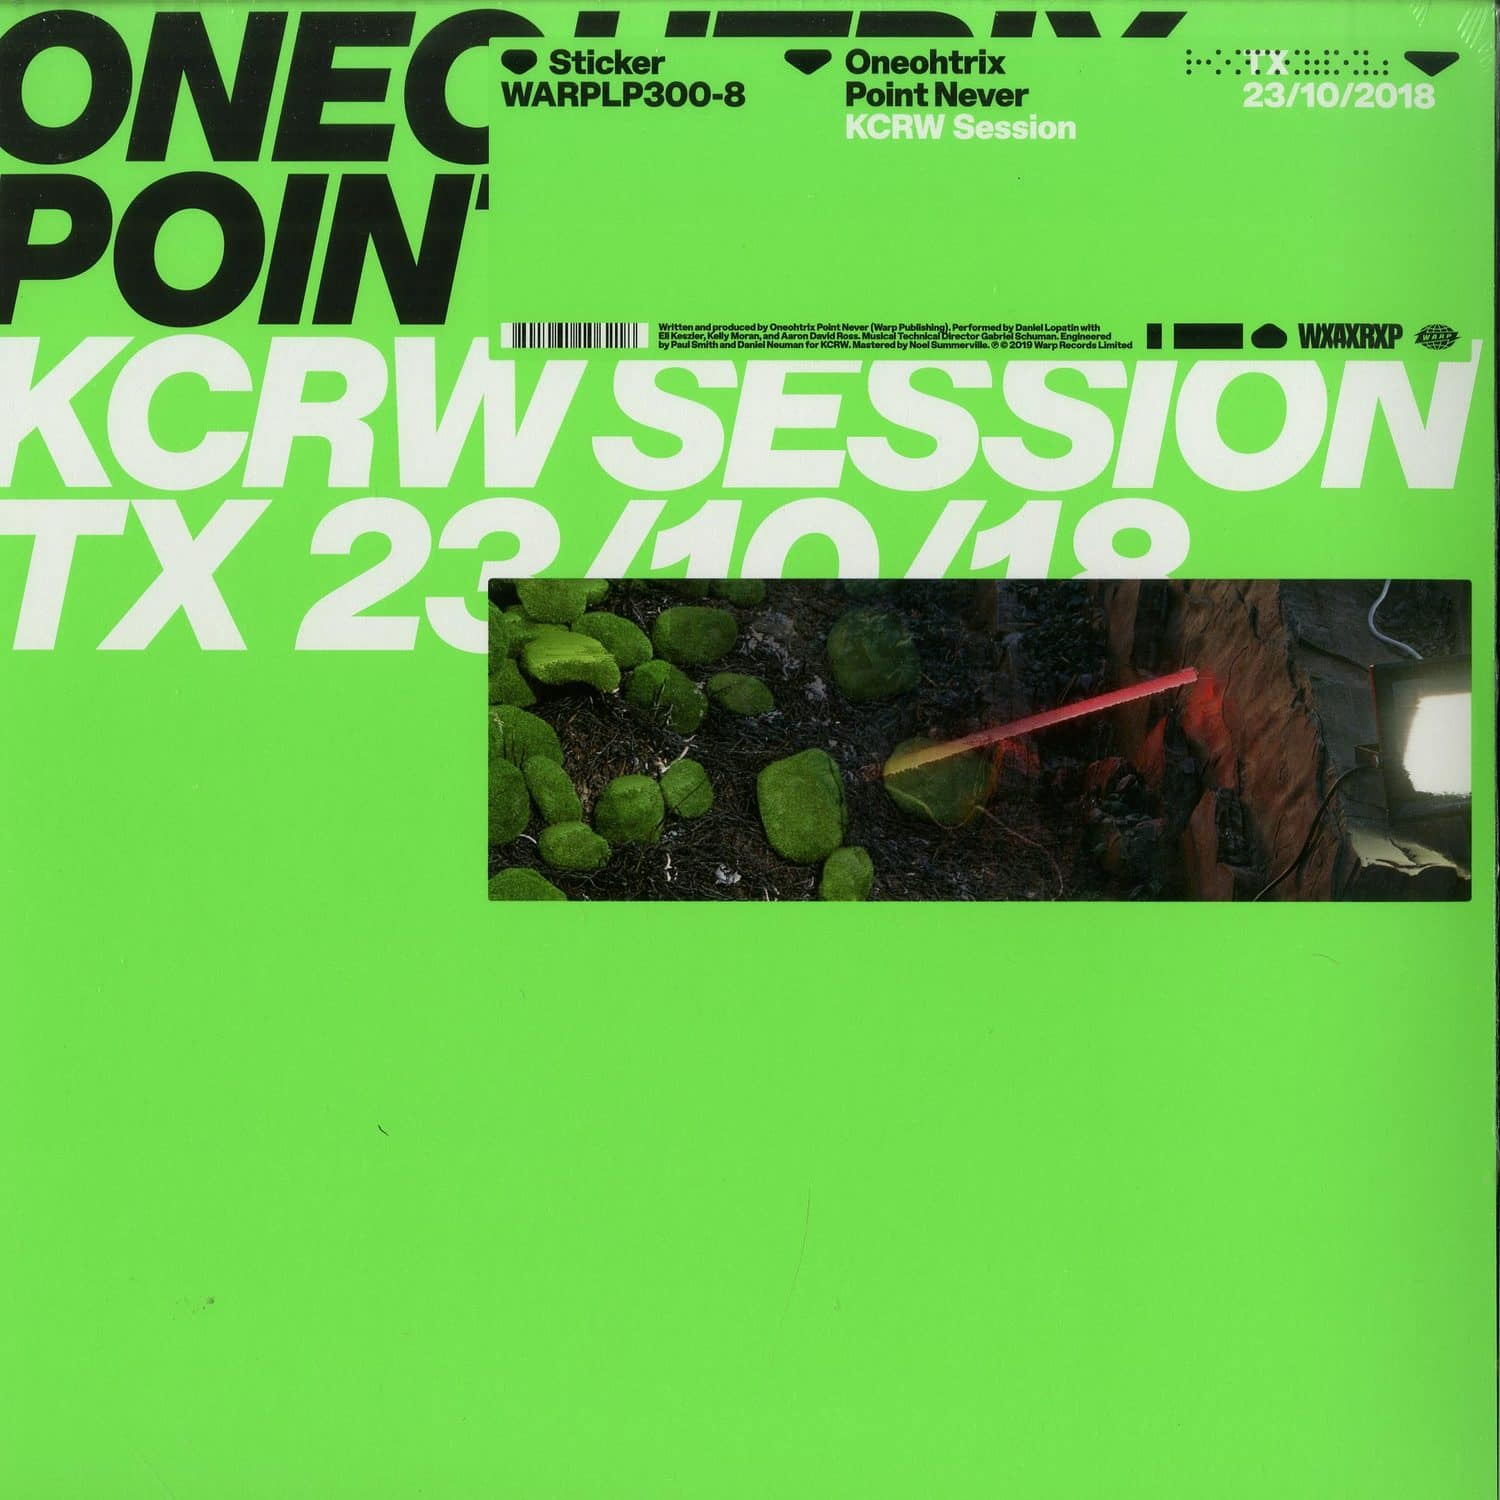 Oneohtrix Point Never - KCRW SESSION